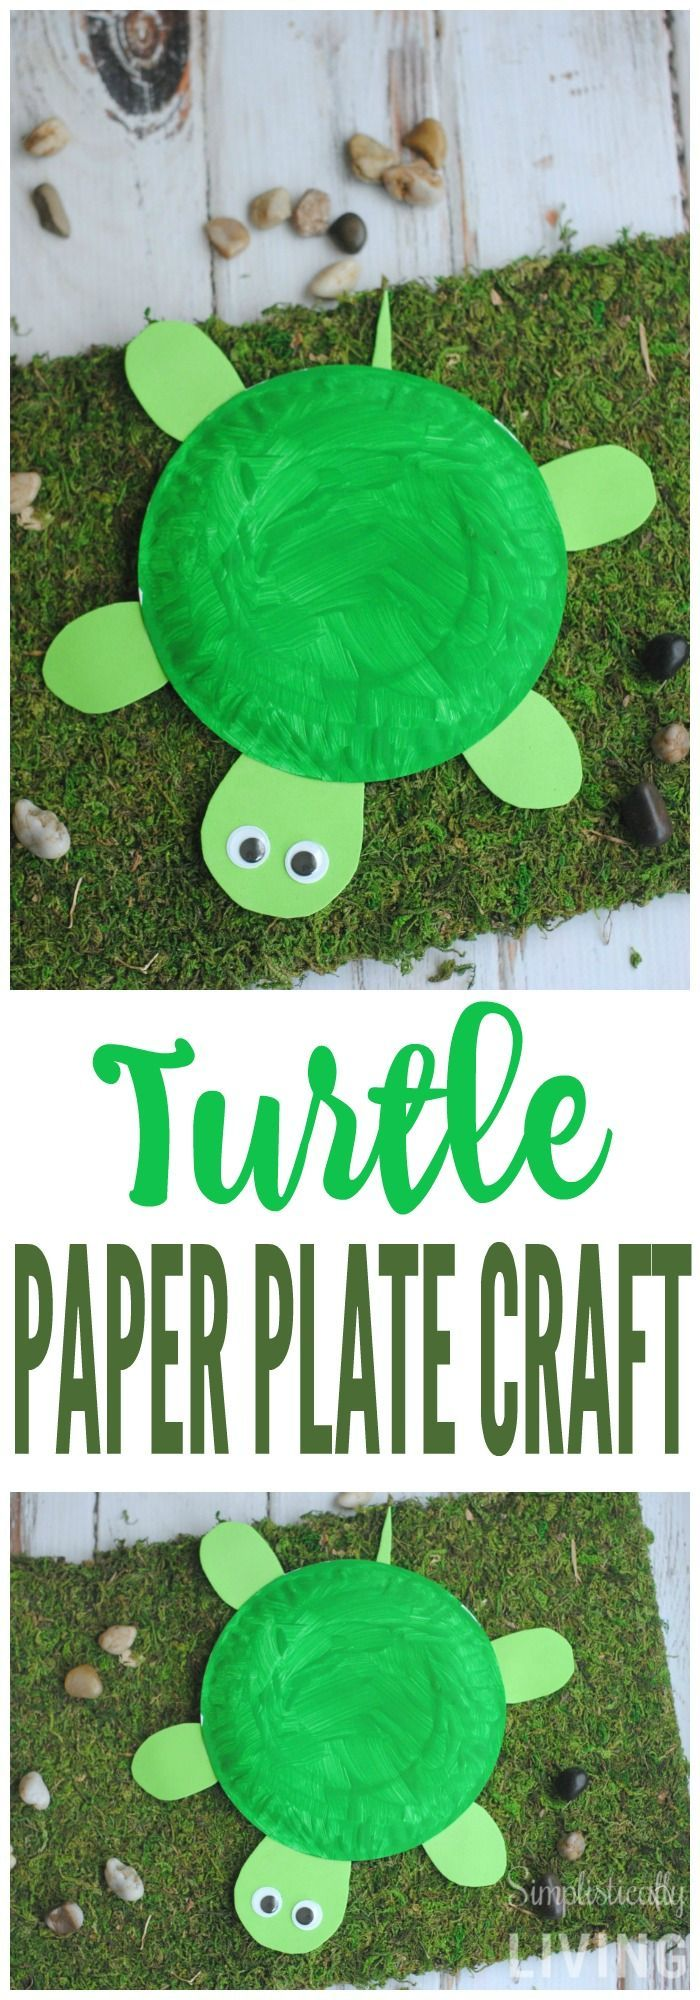 DIY Turtle Paper Plate Simplistically Living More & DIY Turtle Paper Plate | Pinterest | Turtle Craft and Paper plate ...